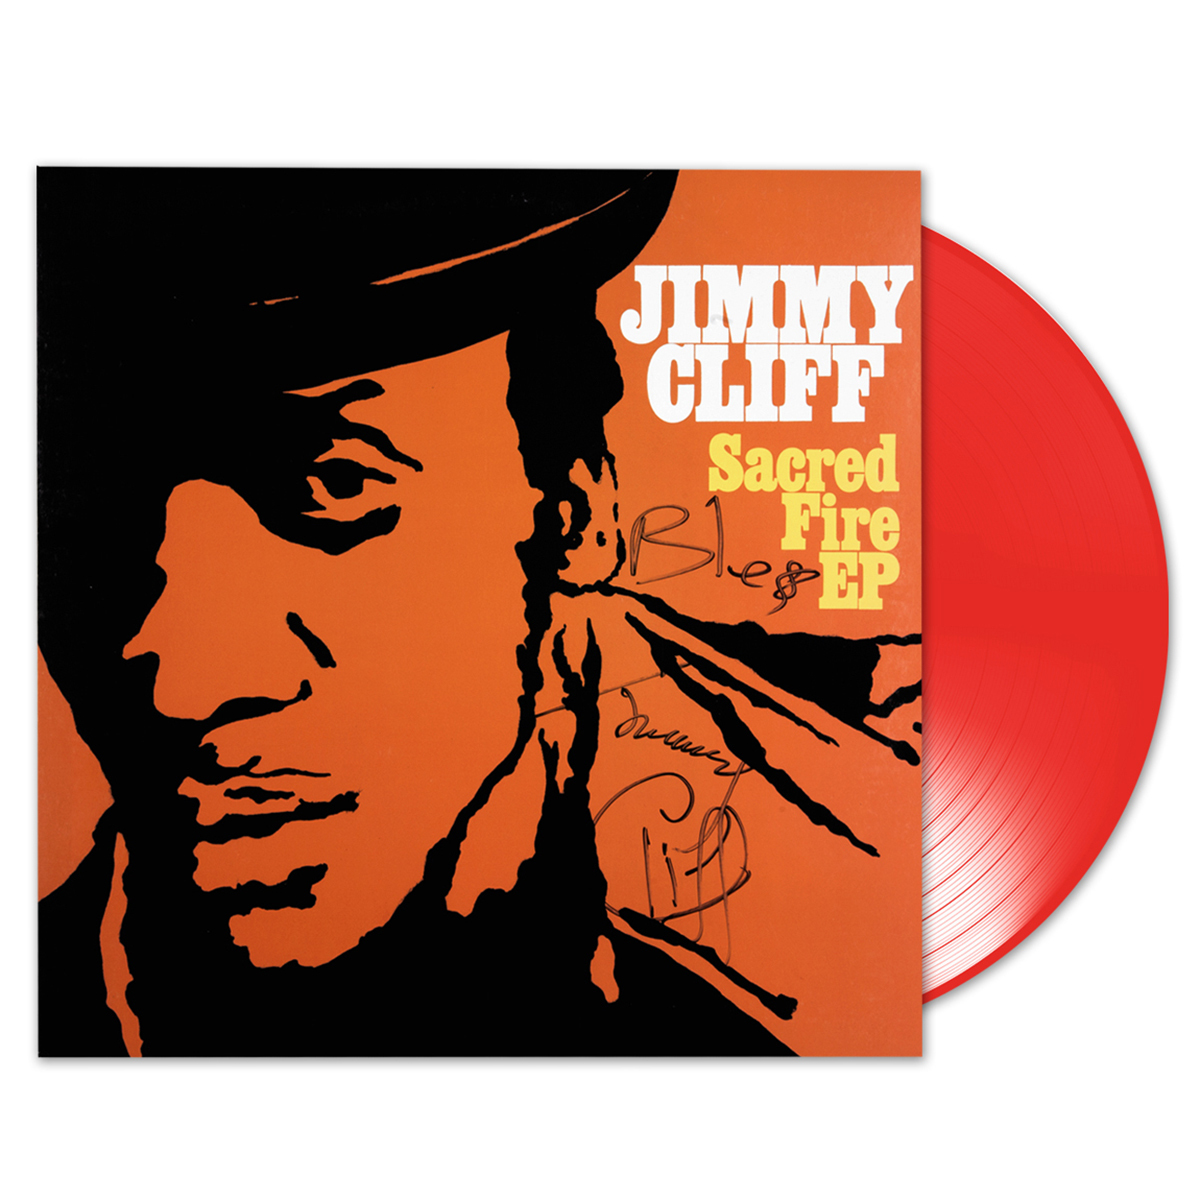 Jimmy Cliff - Sacred Fire EP (Signed)